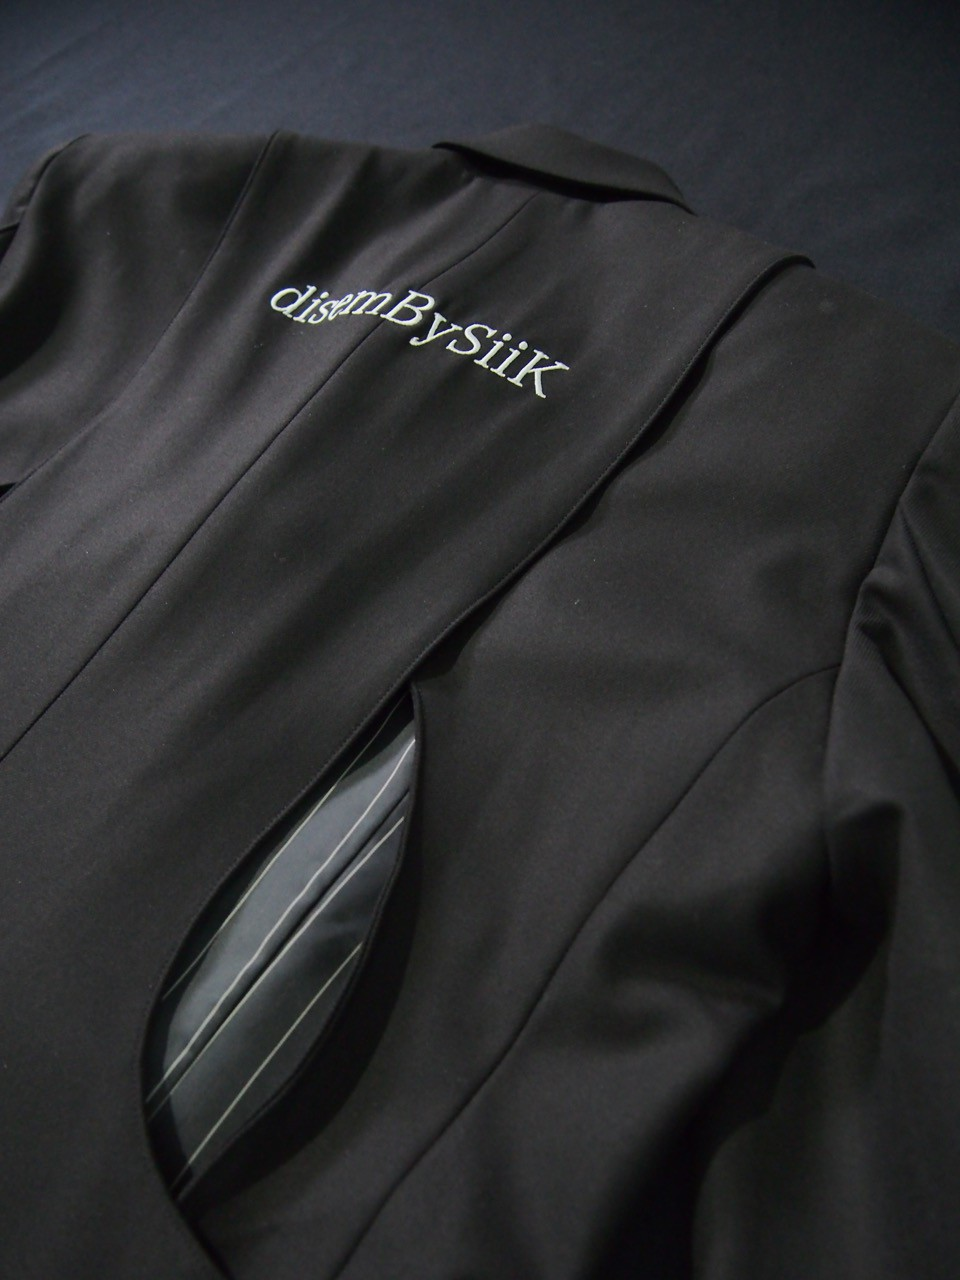 """【recommend】""""disemBySiiK"""" 2020-21 A/W collection."""